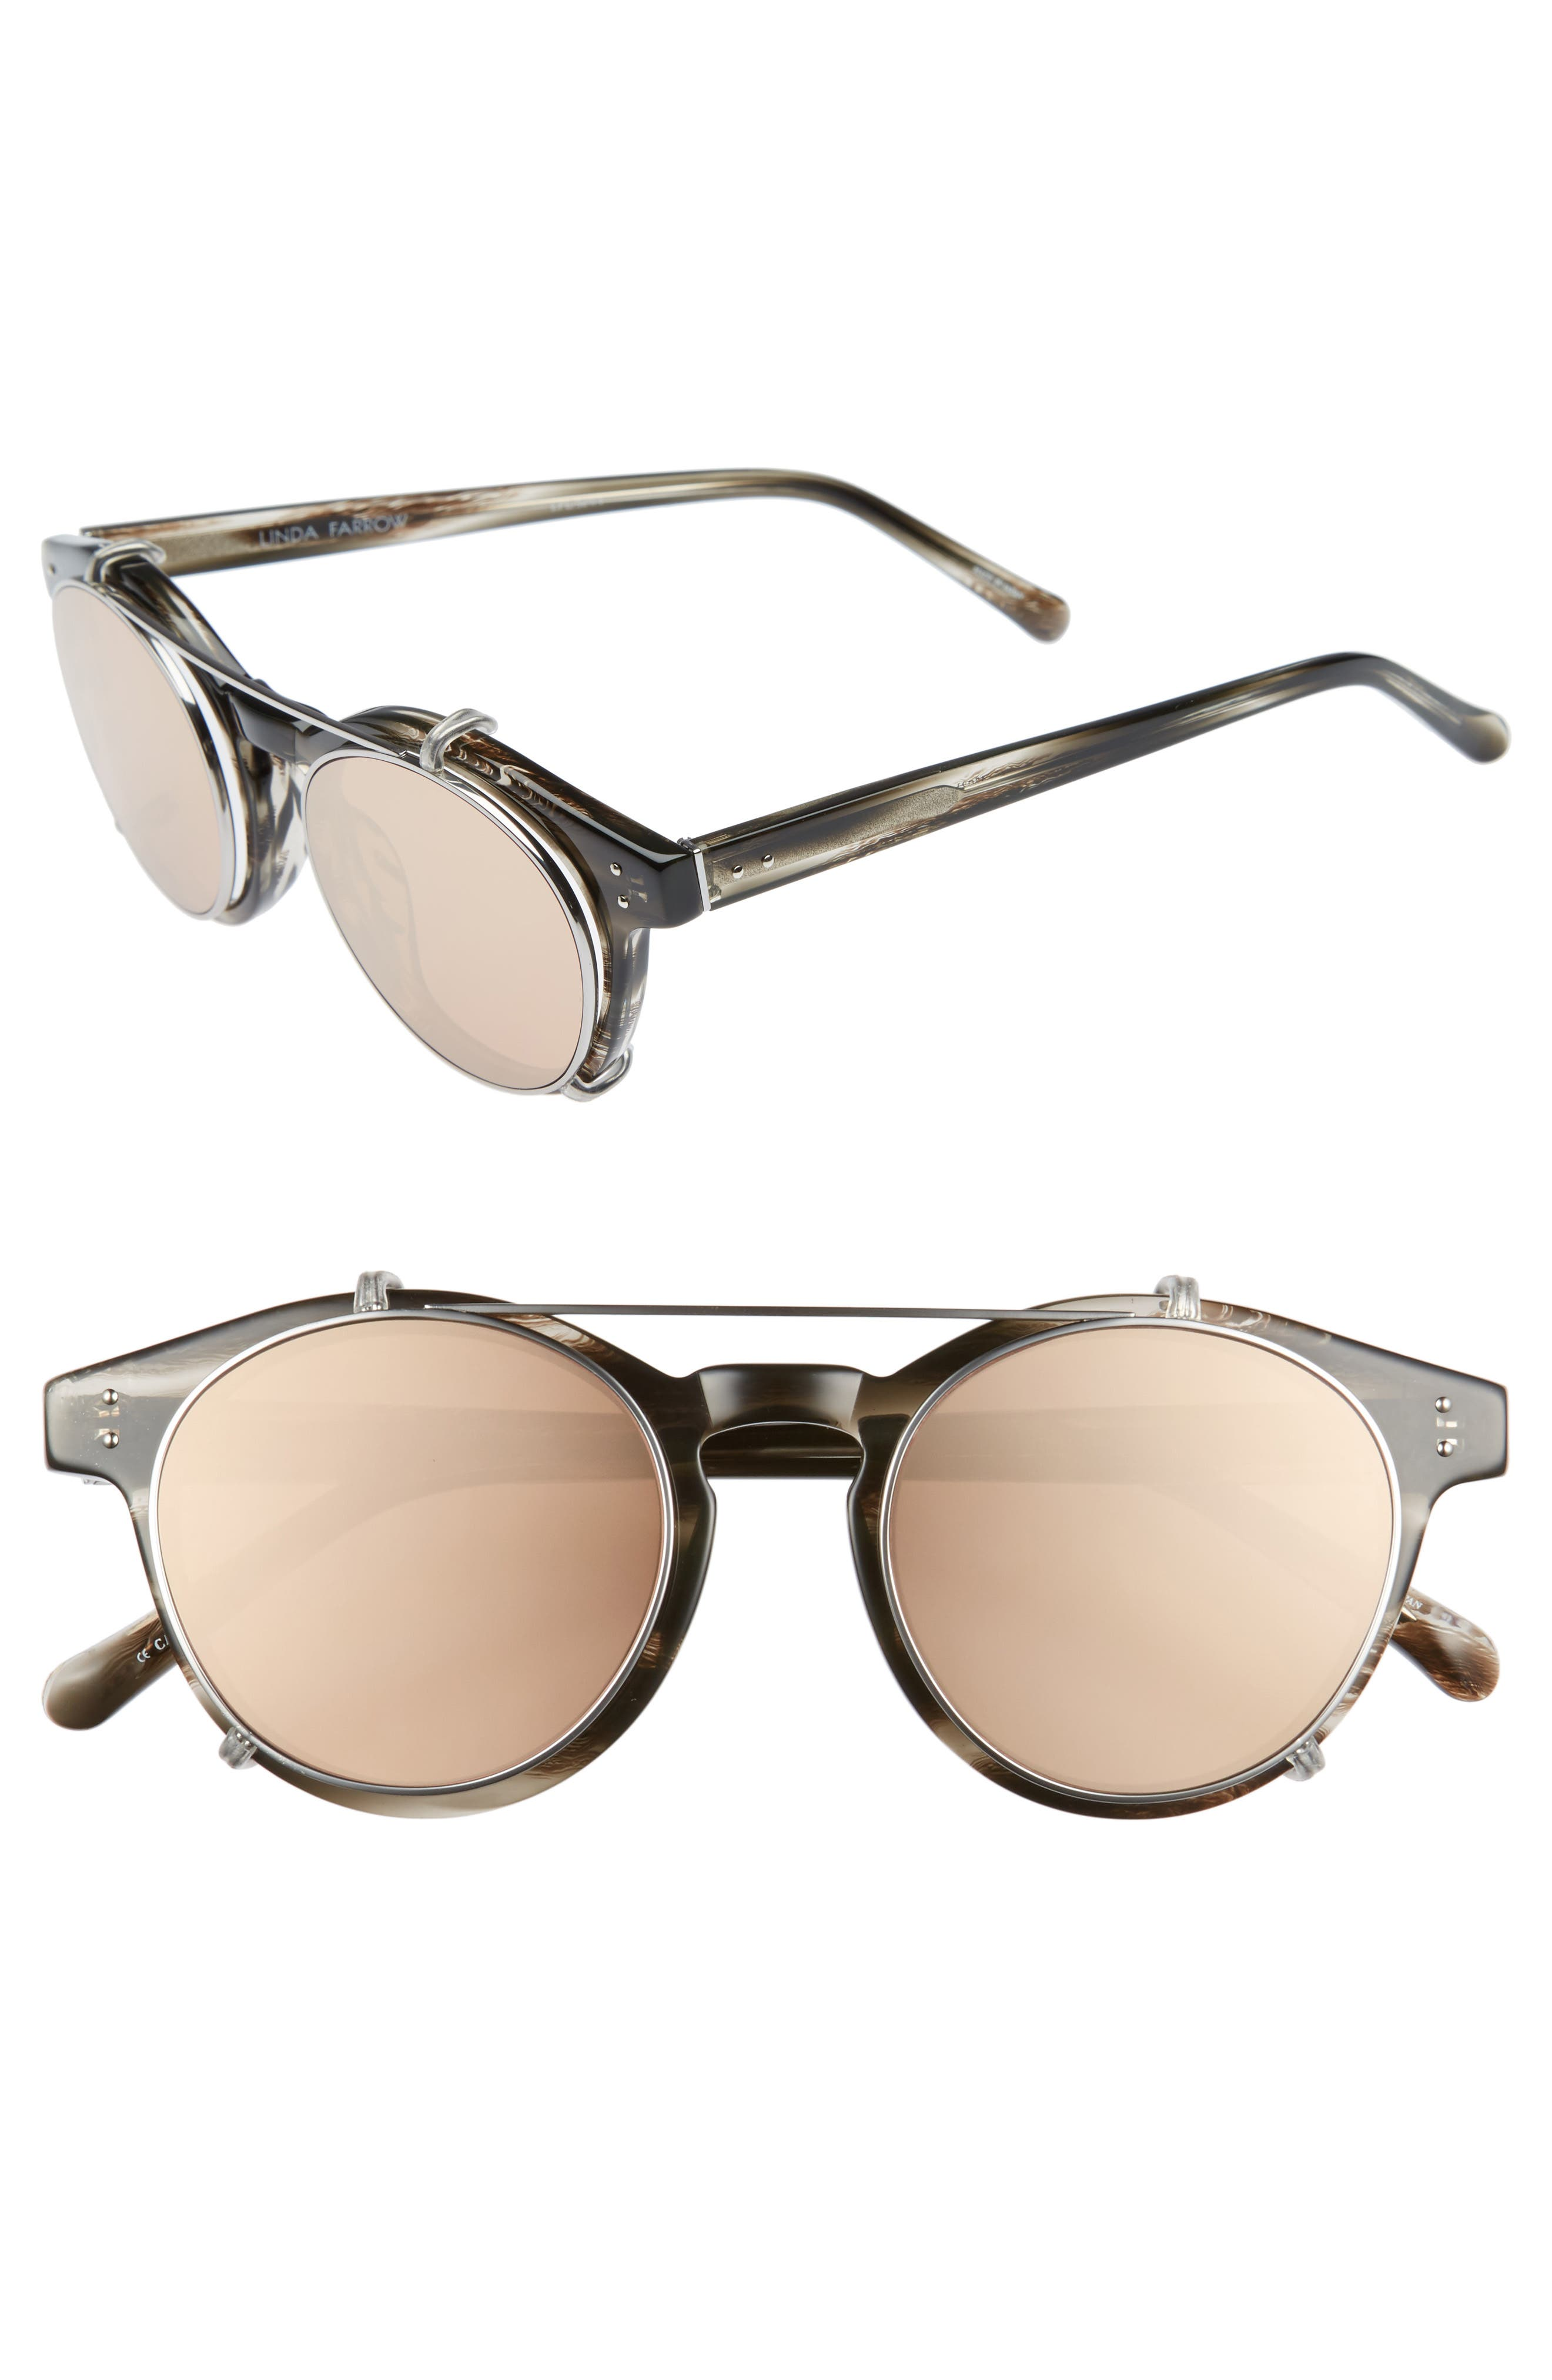 47mm Optical Glasses with Clip-On 18 Karat Rose Gold Trim Sunglasses,                             Main thumbnail 1, color,